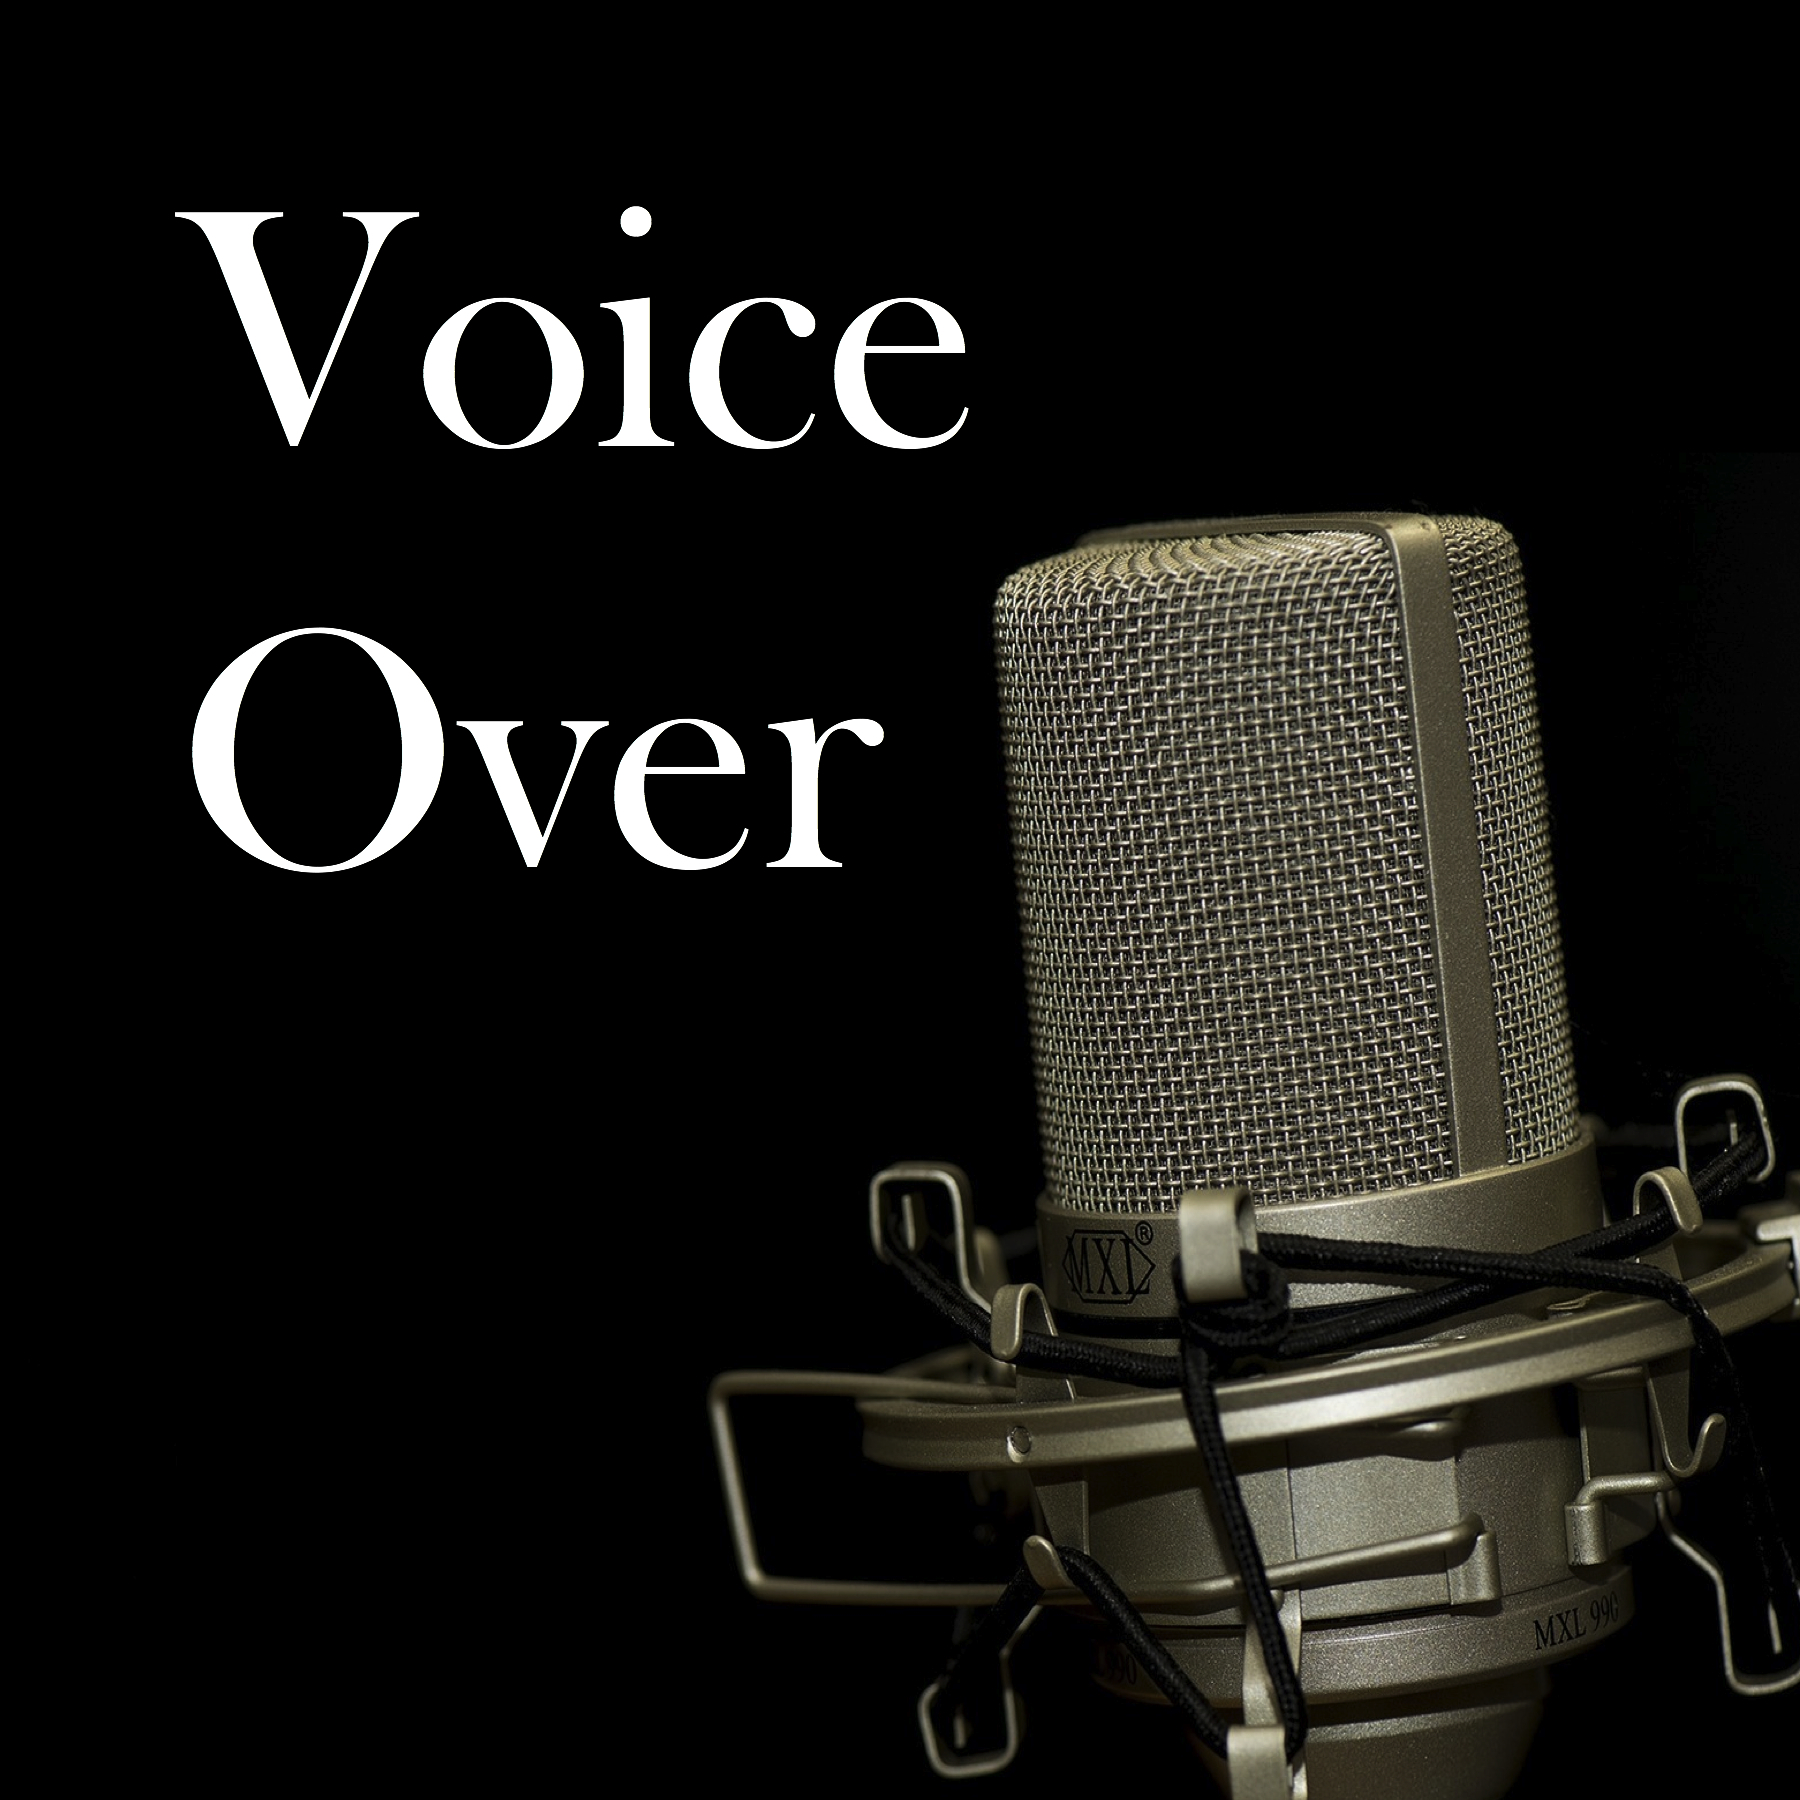 Christian Voiceover Service for Audiobooks